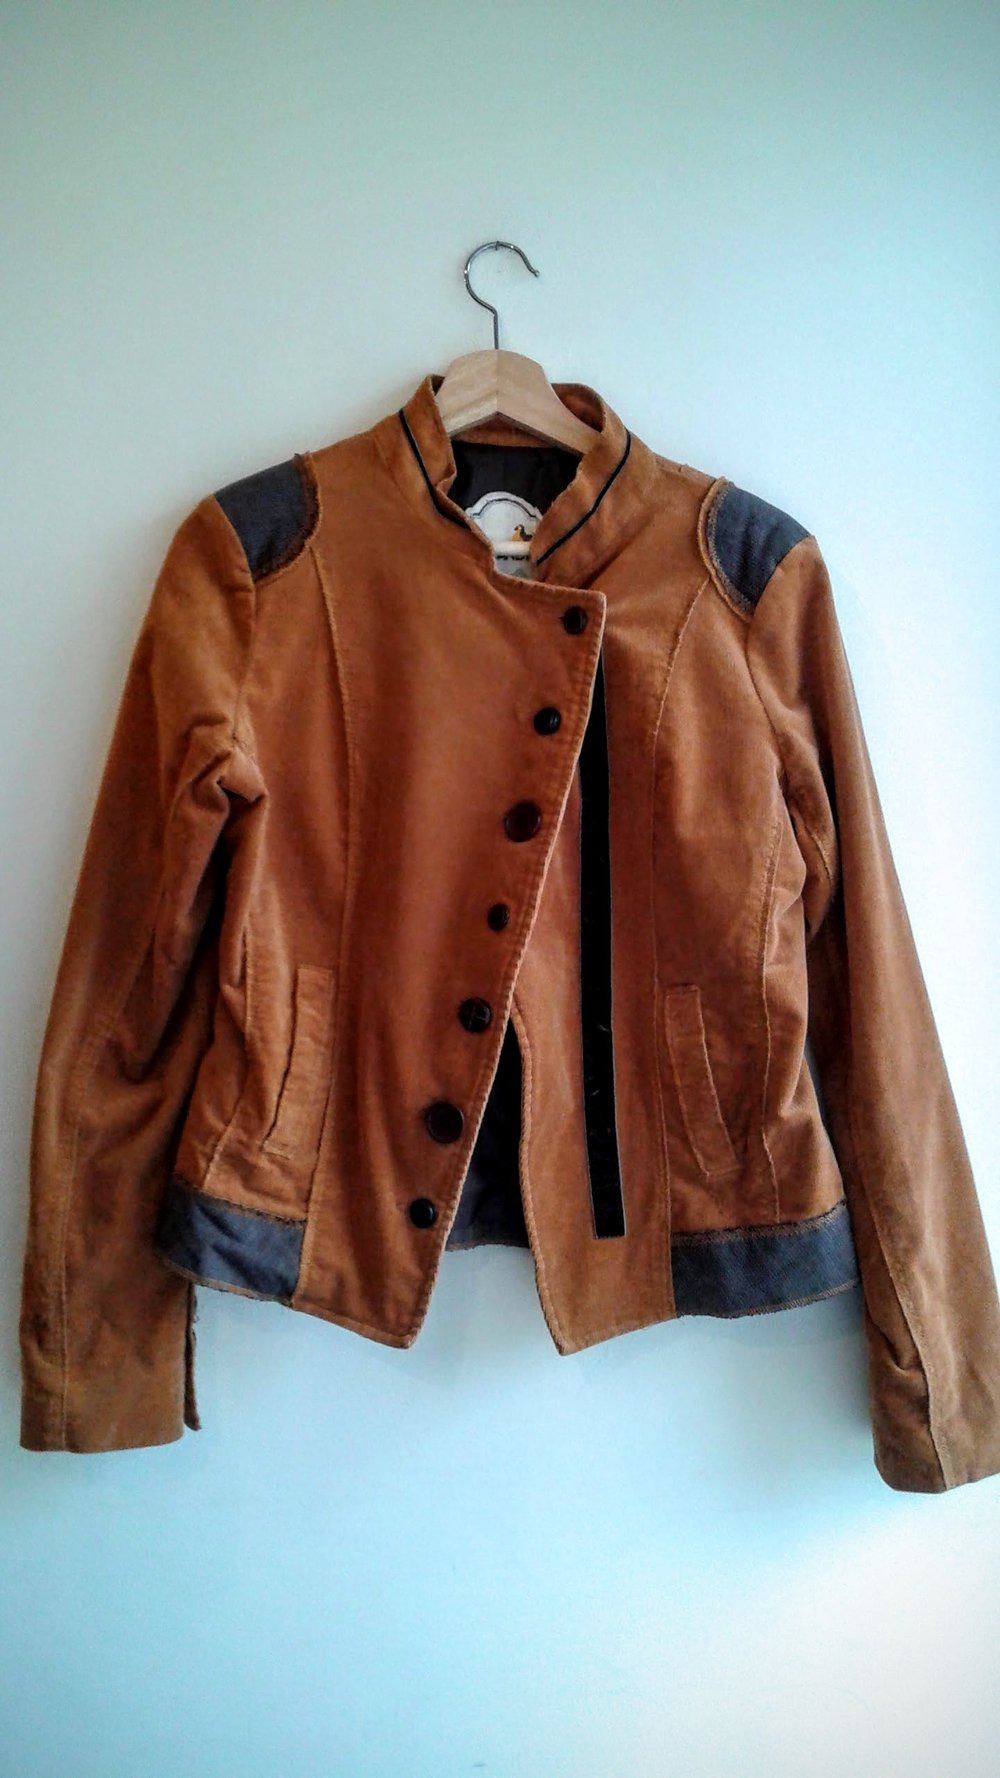 Nick and Mo jacket; Size M, $26